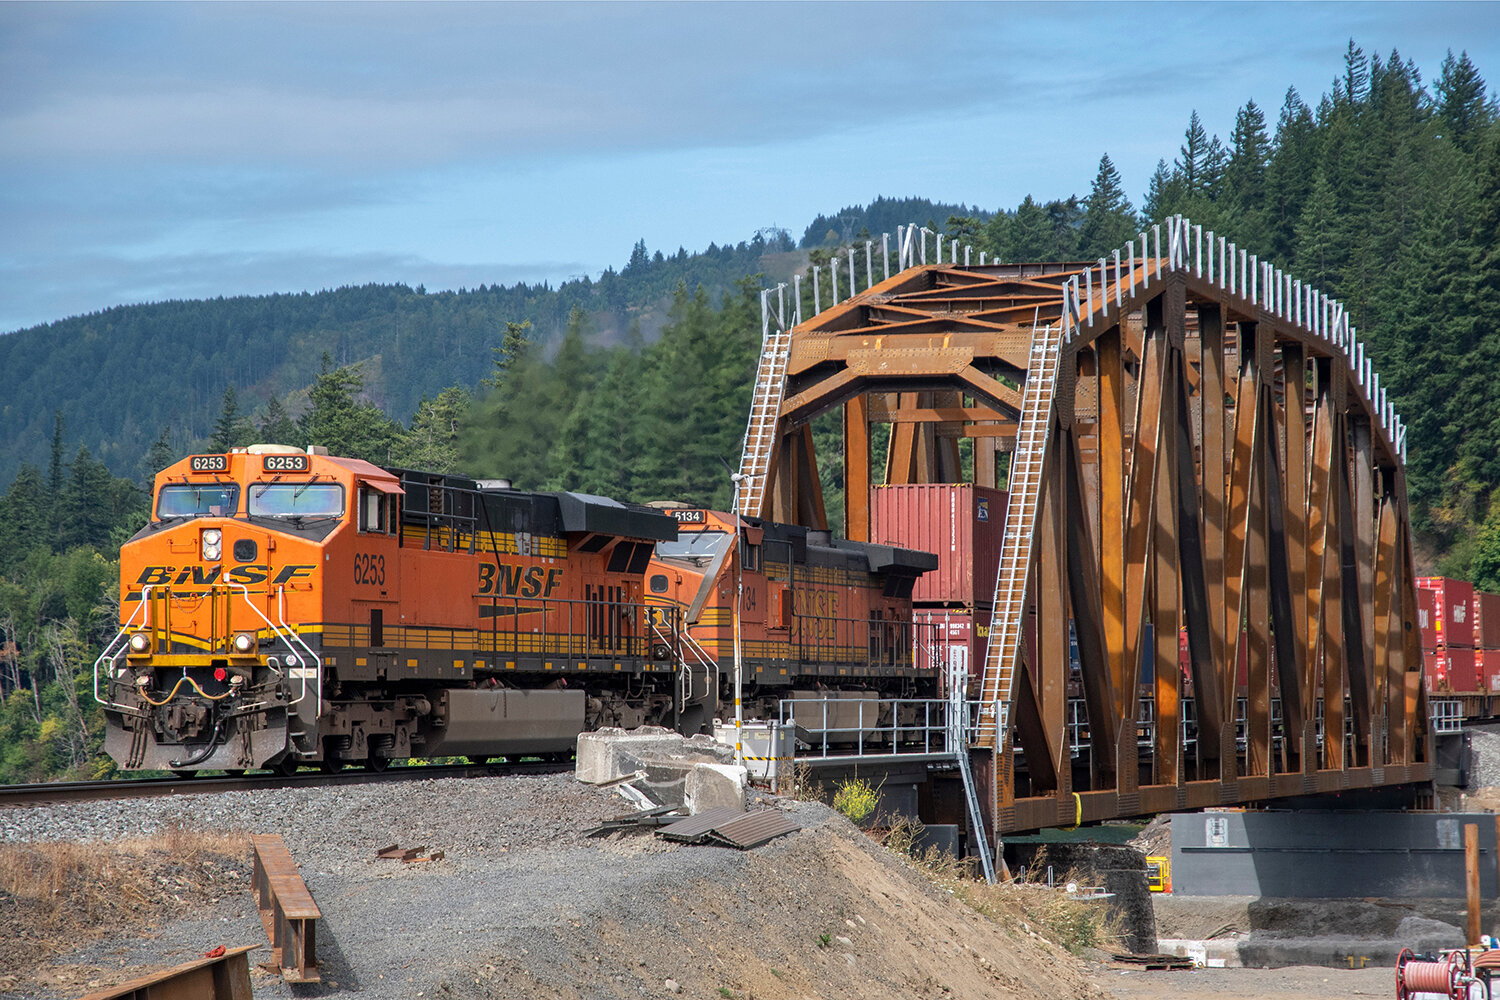 BNSF_4249_Wind River Bridge_02_1000x1500.jpg